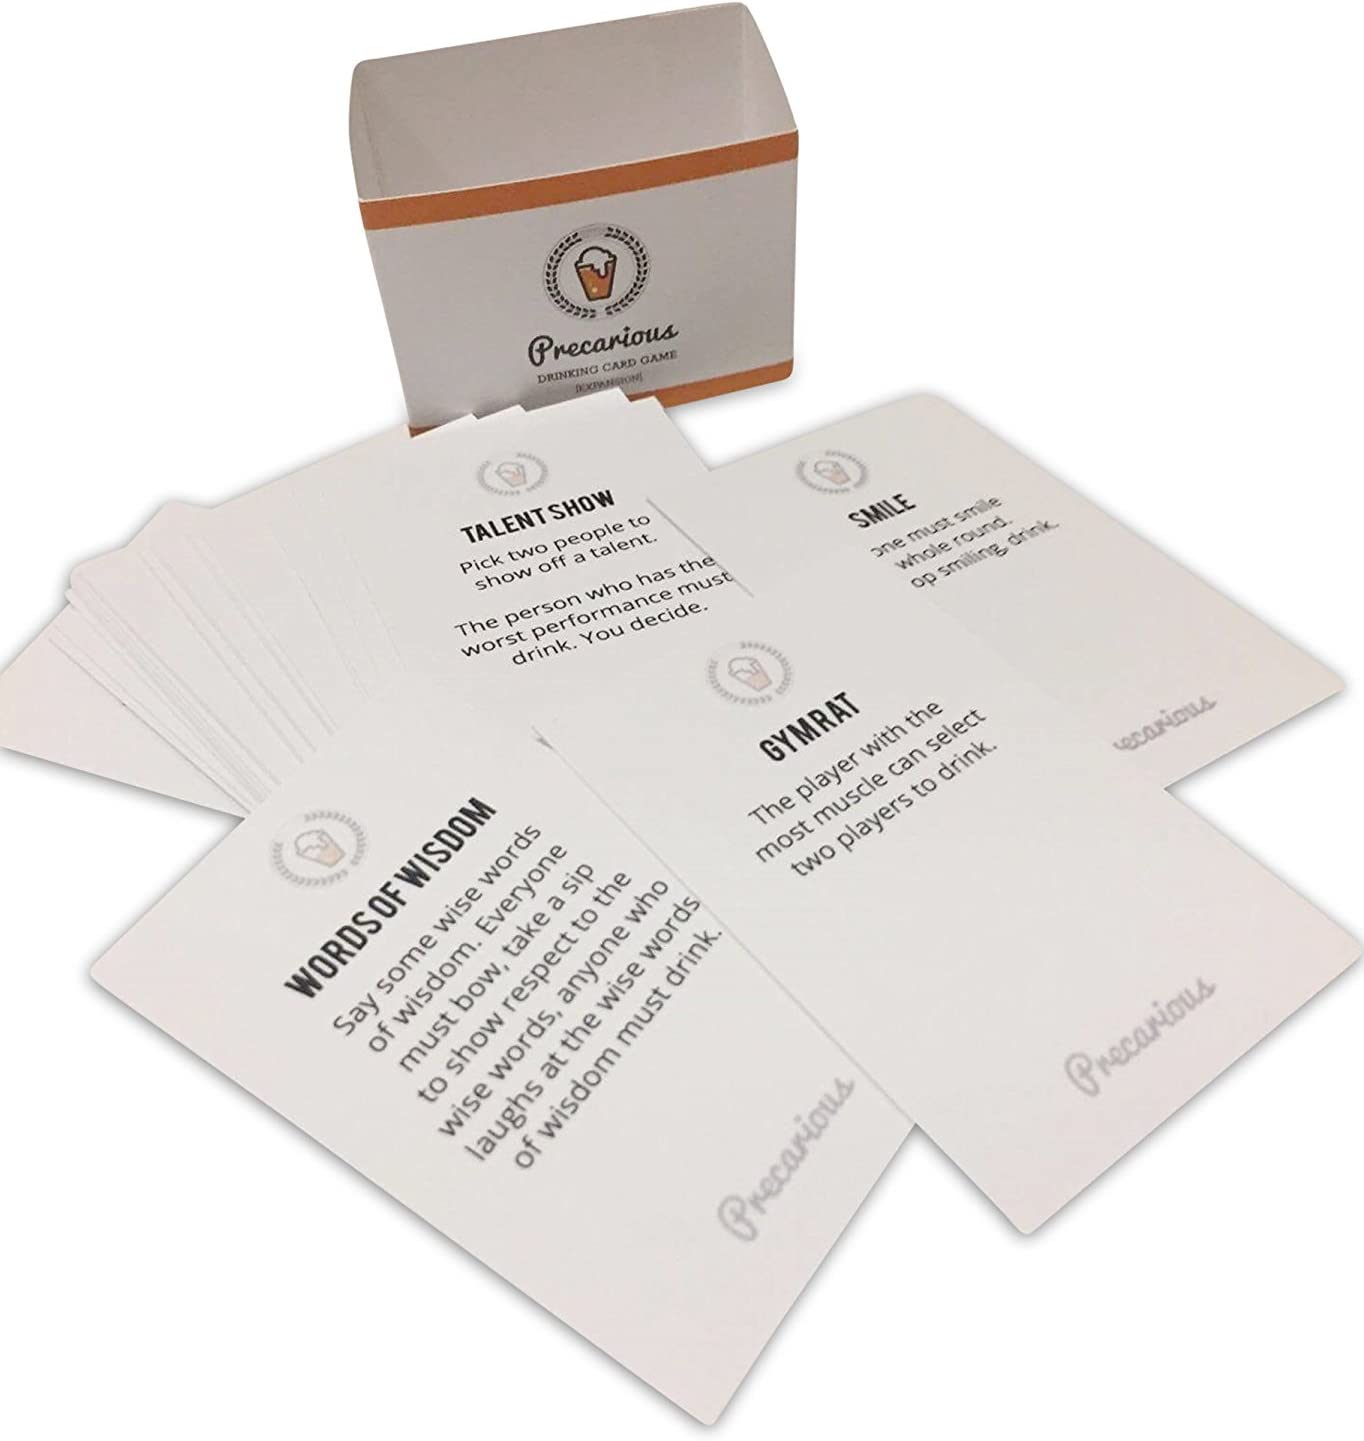 Precarious Drinking Game A Fun Party Ga 50 Unique Cards To Decide Who Drinks